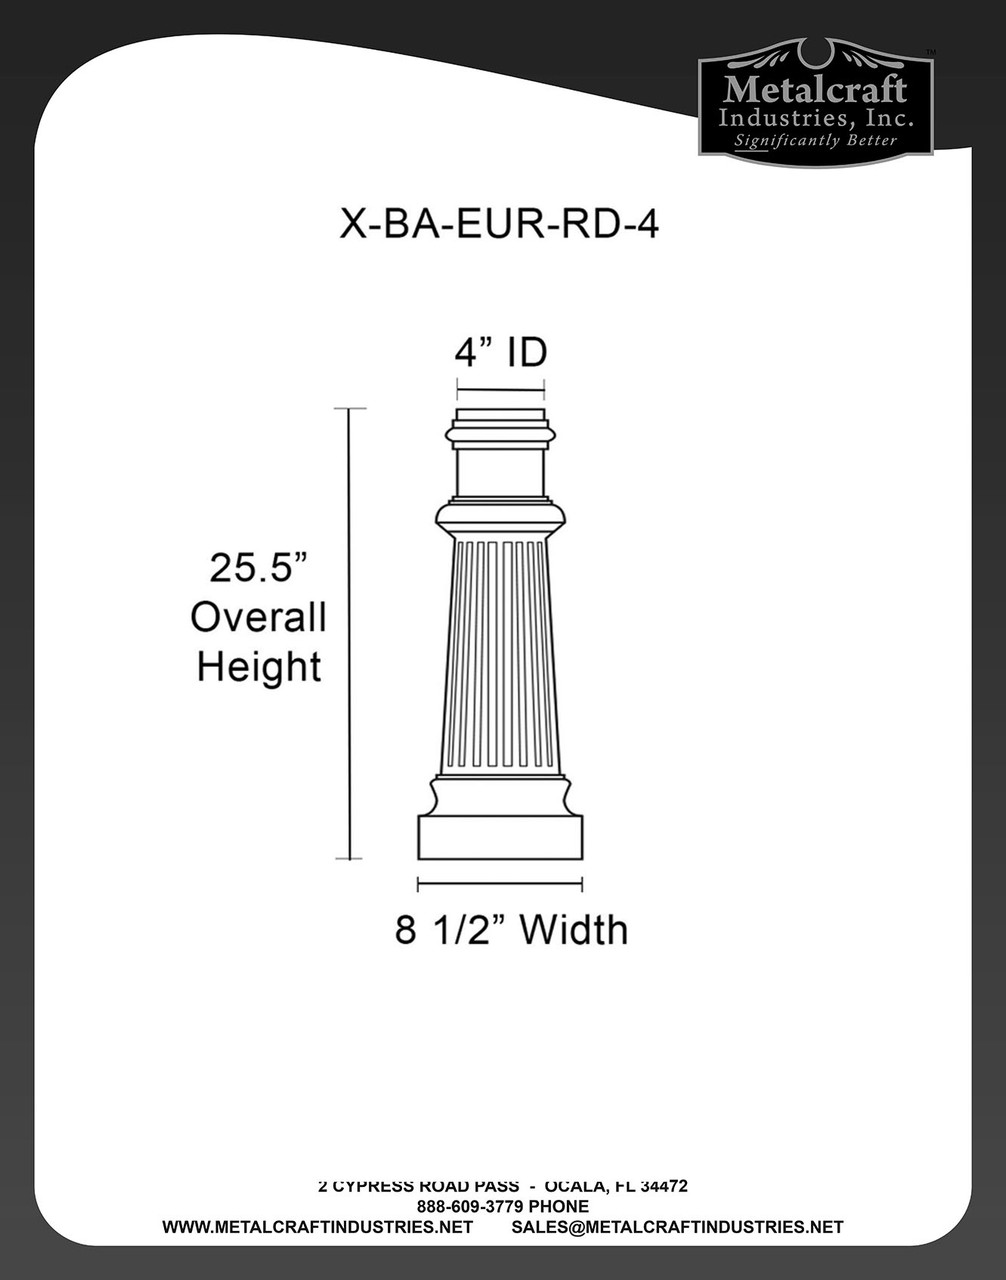 X-BA-EUR-RD-4 SPECIFICATION DRAWING